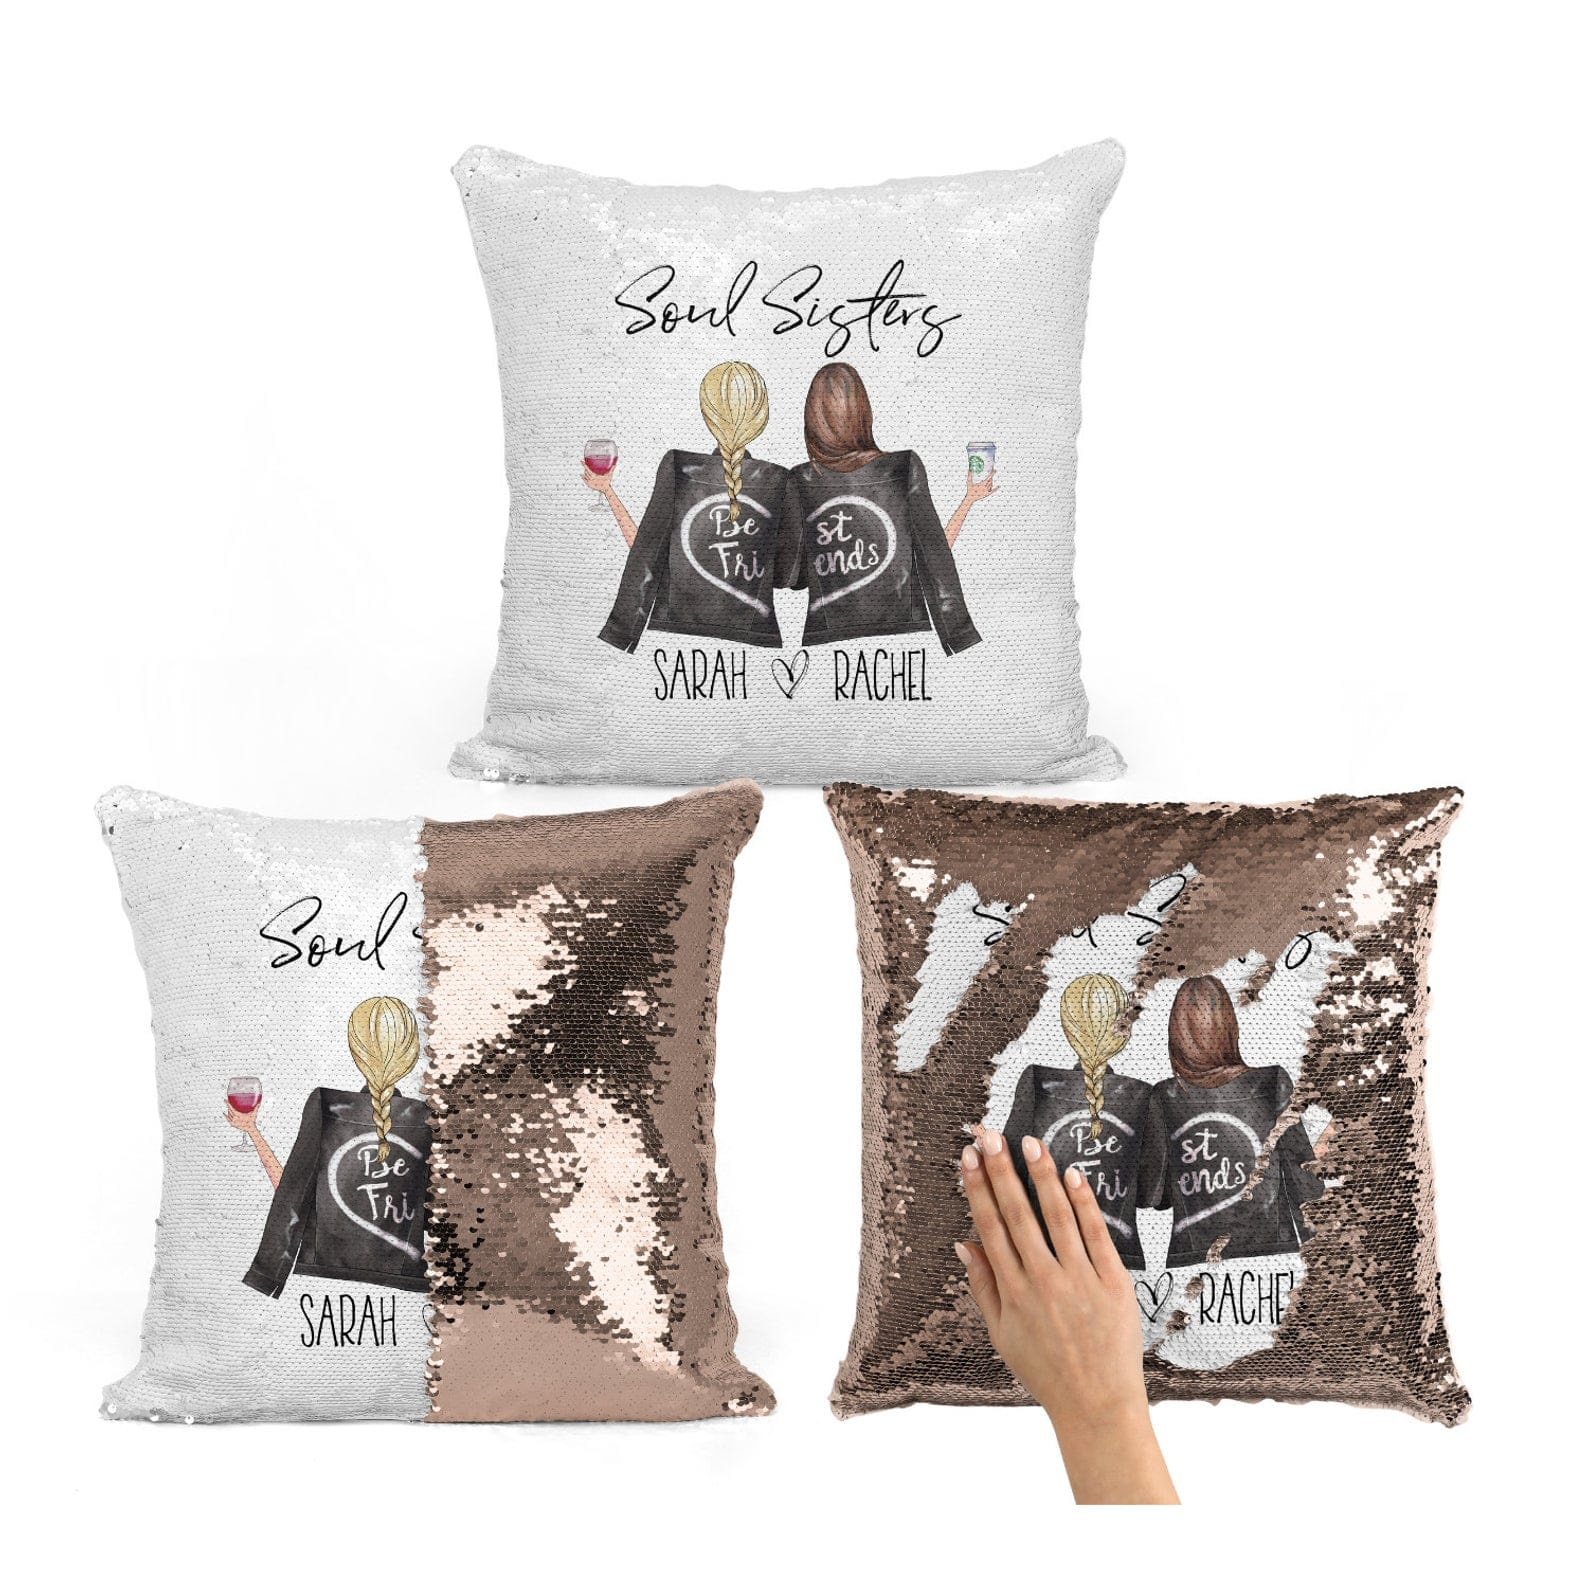 sentimental-gifts-for-best-friends-pillow